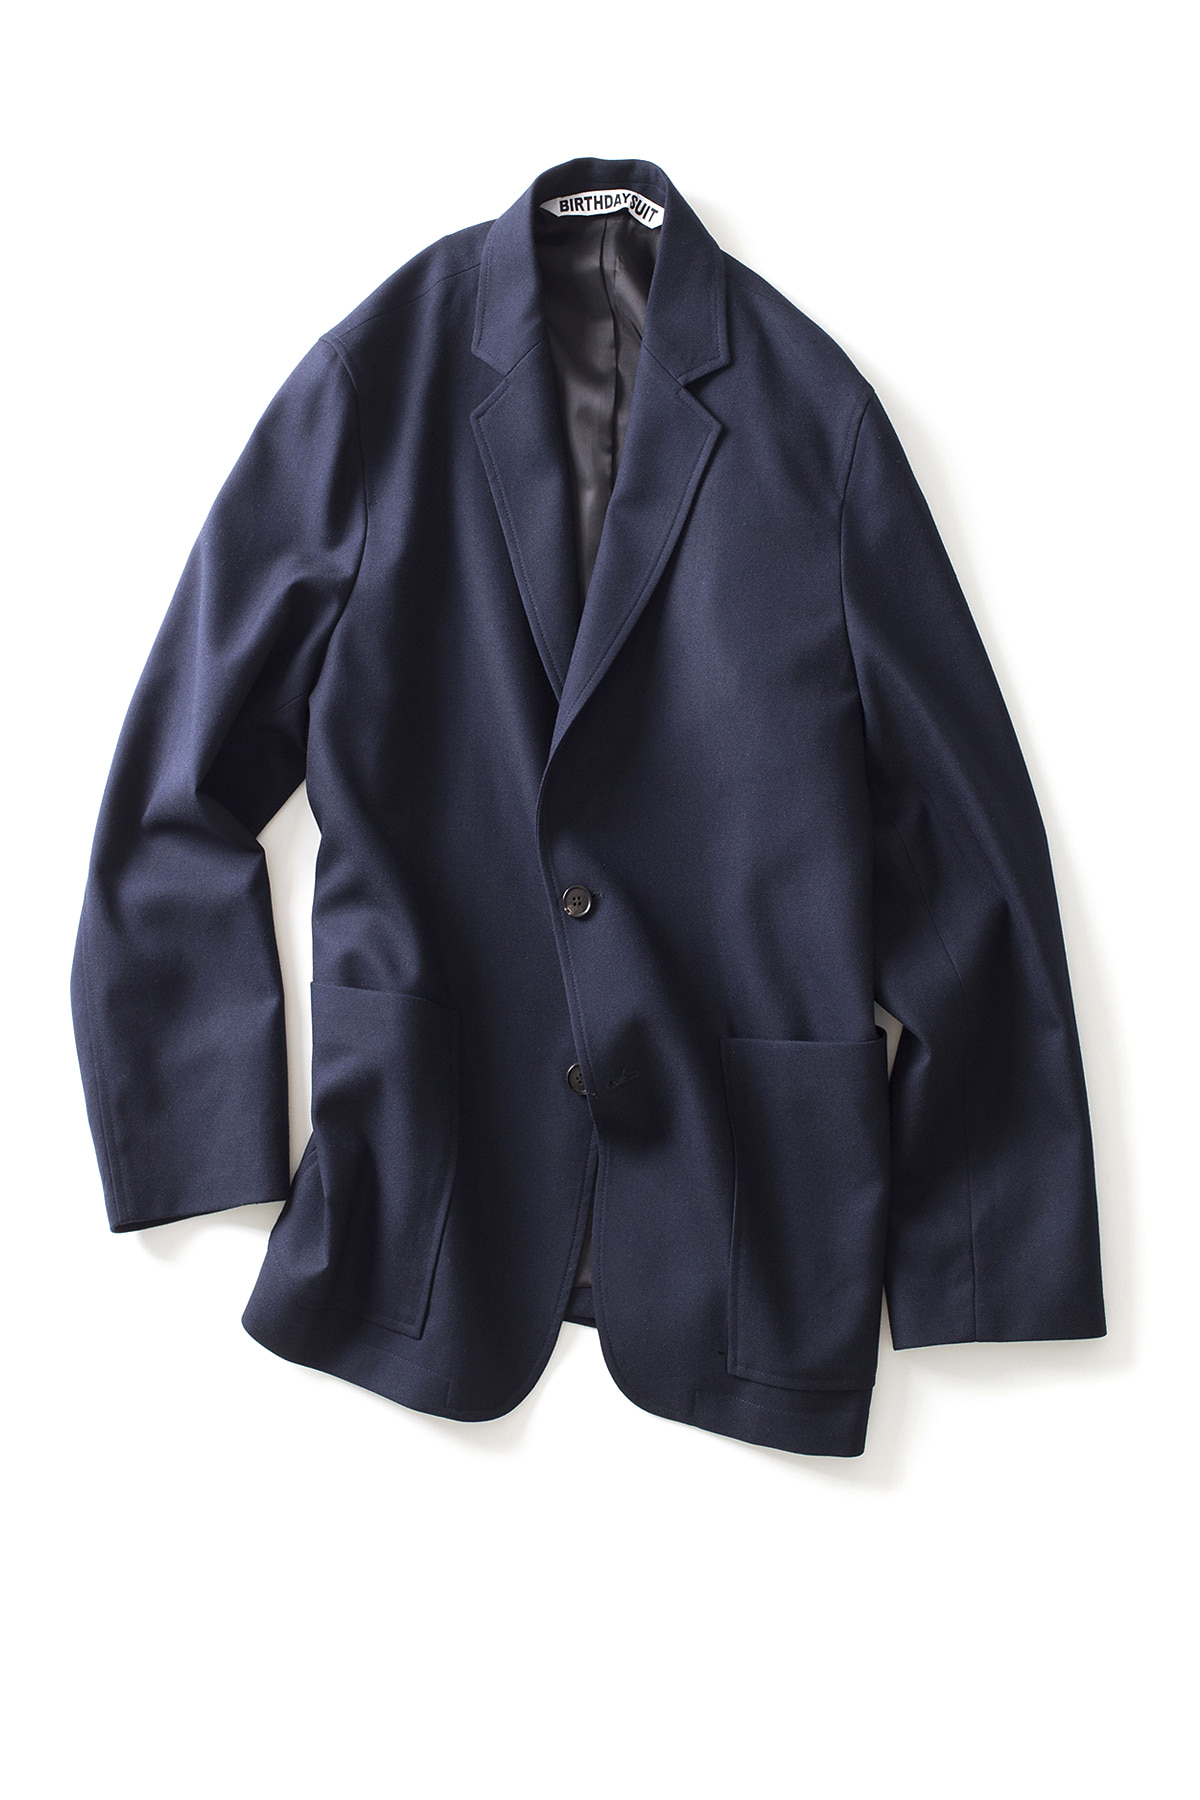 BIRTHDAYSUIT : Daily Suit Jacket (Navy)